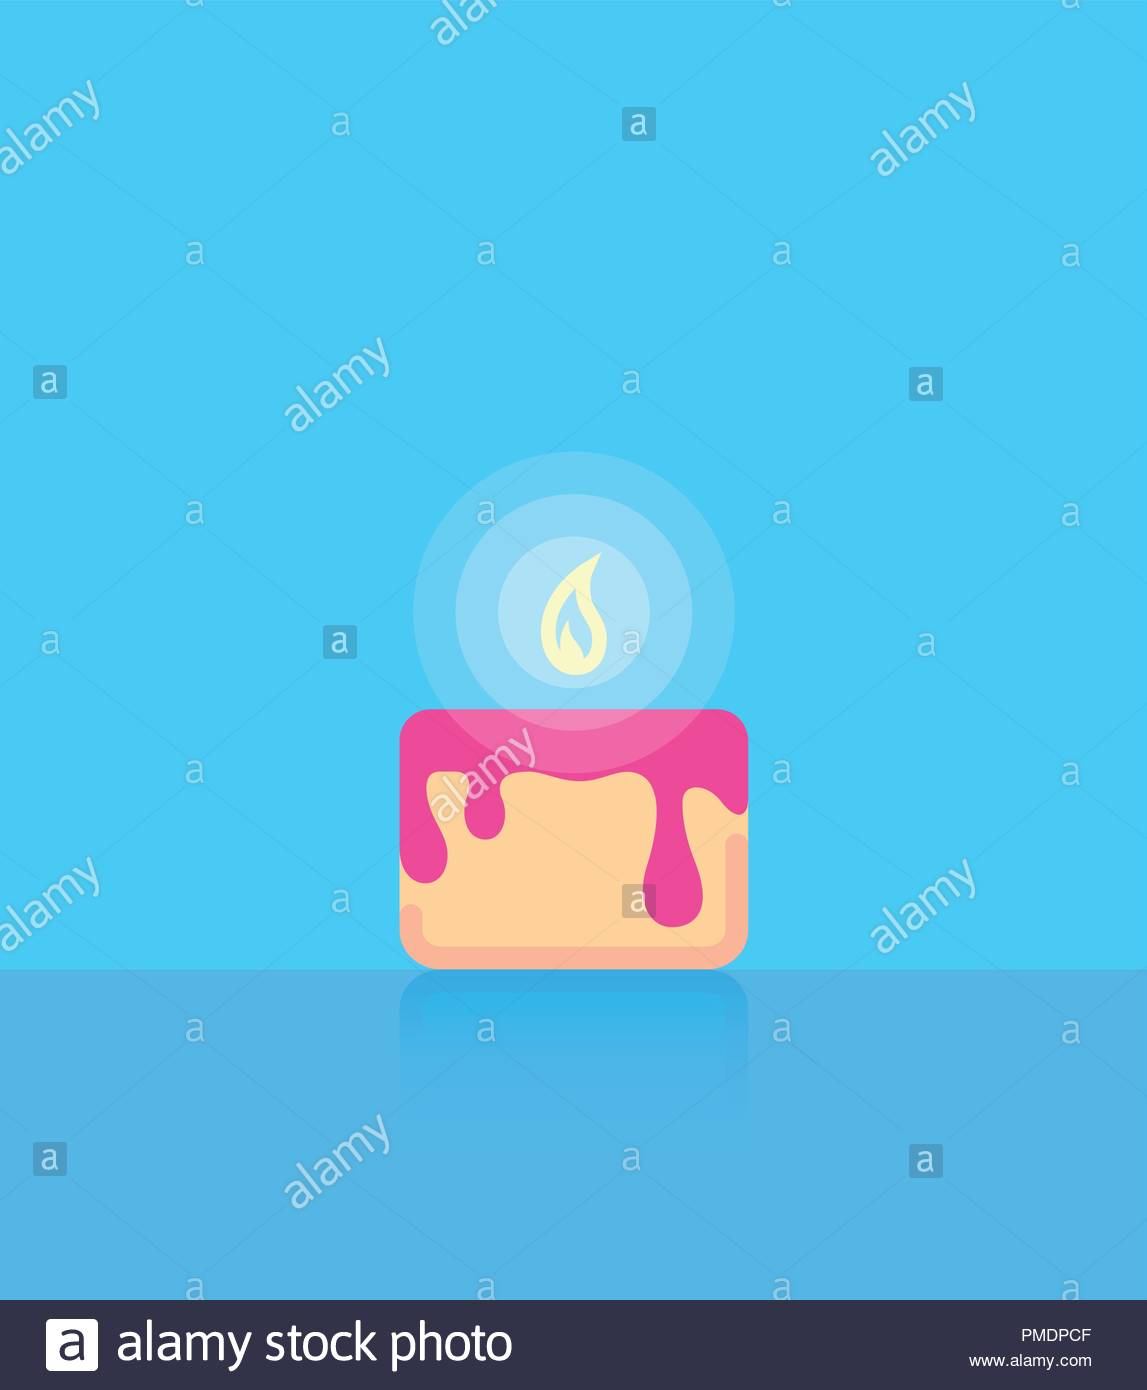 Birthday Cake on Blue background in Flat Style with Copy Space 1147x1390